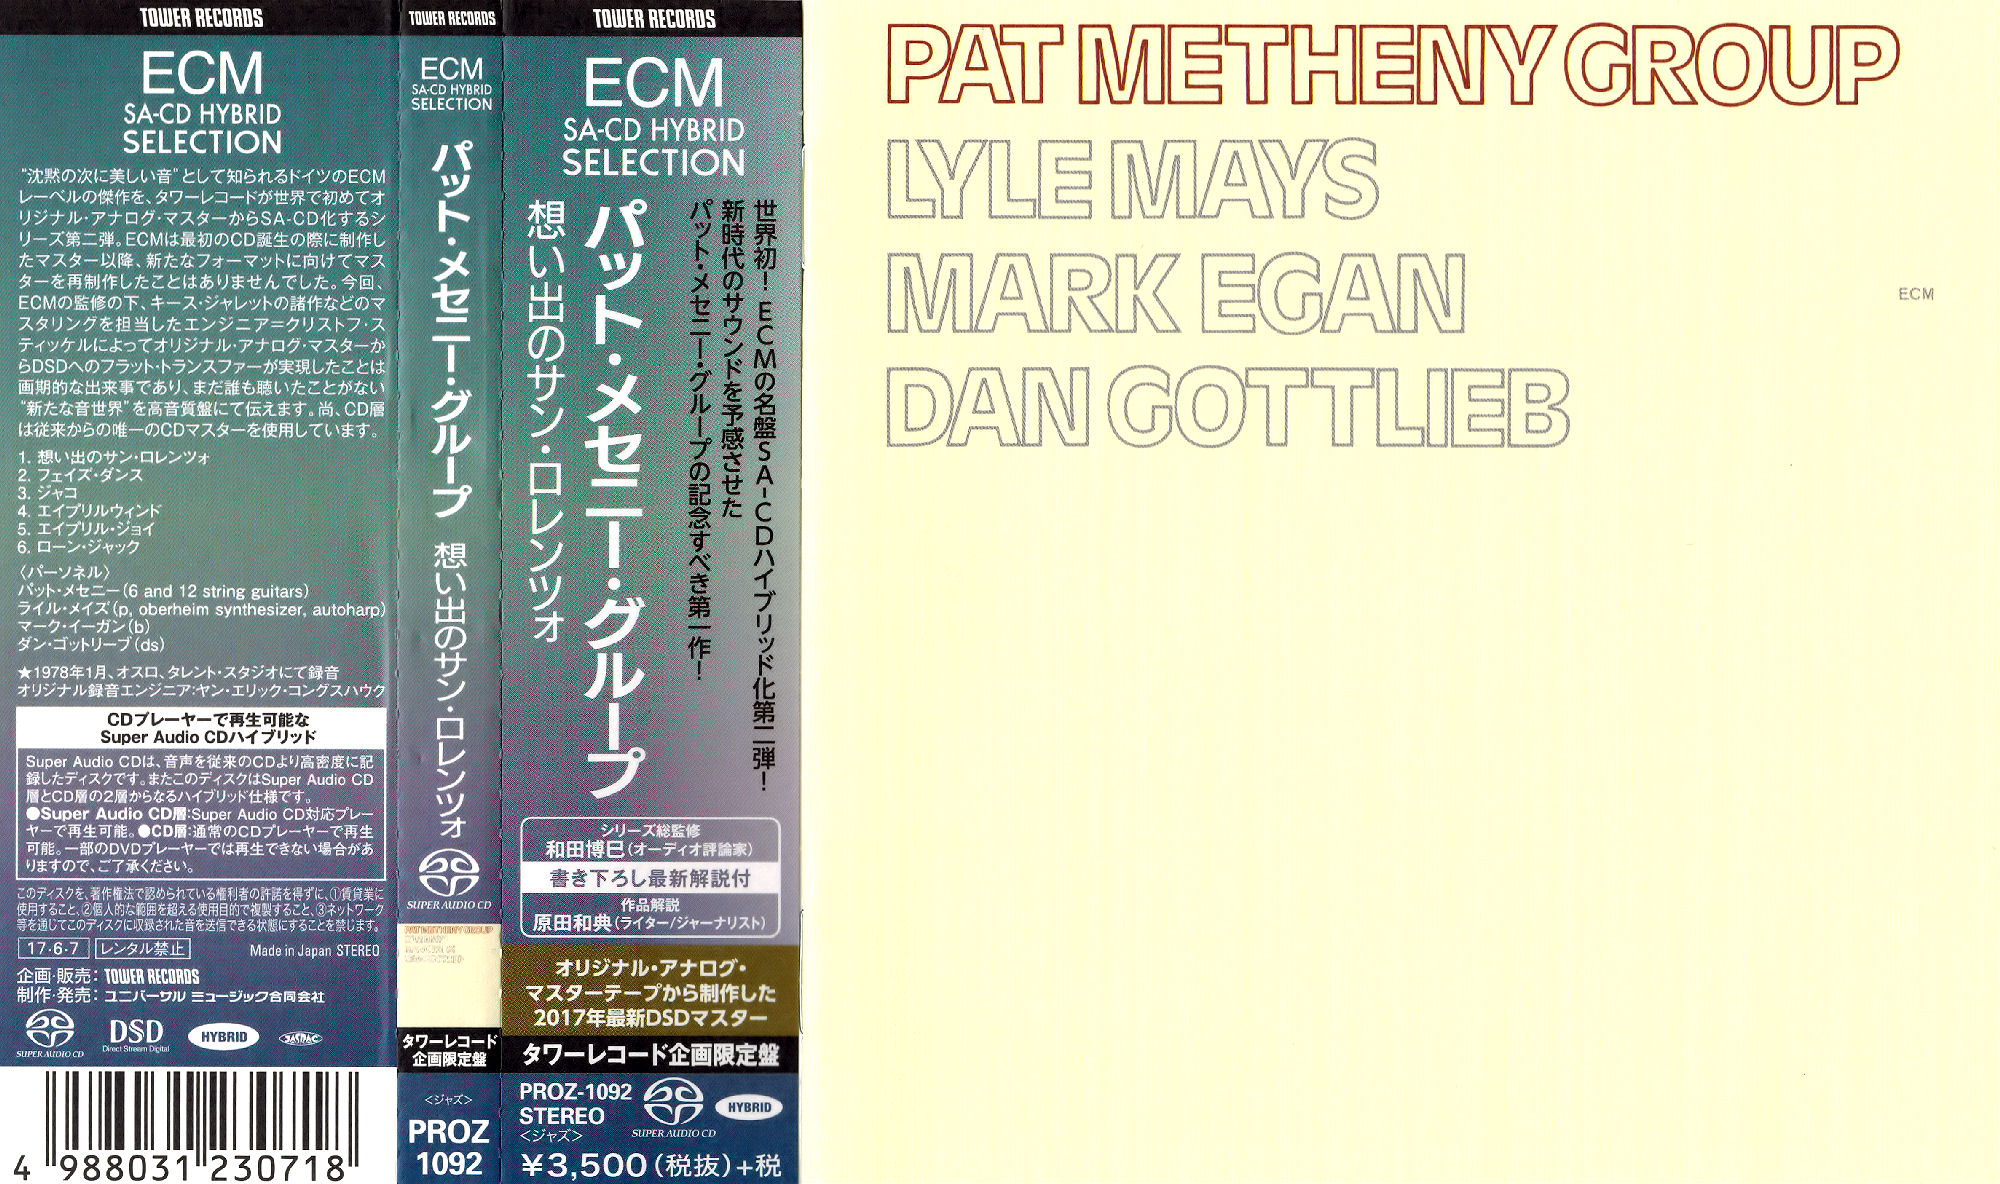 PAT METHENY GROUP.jpg